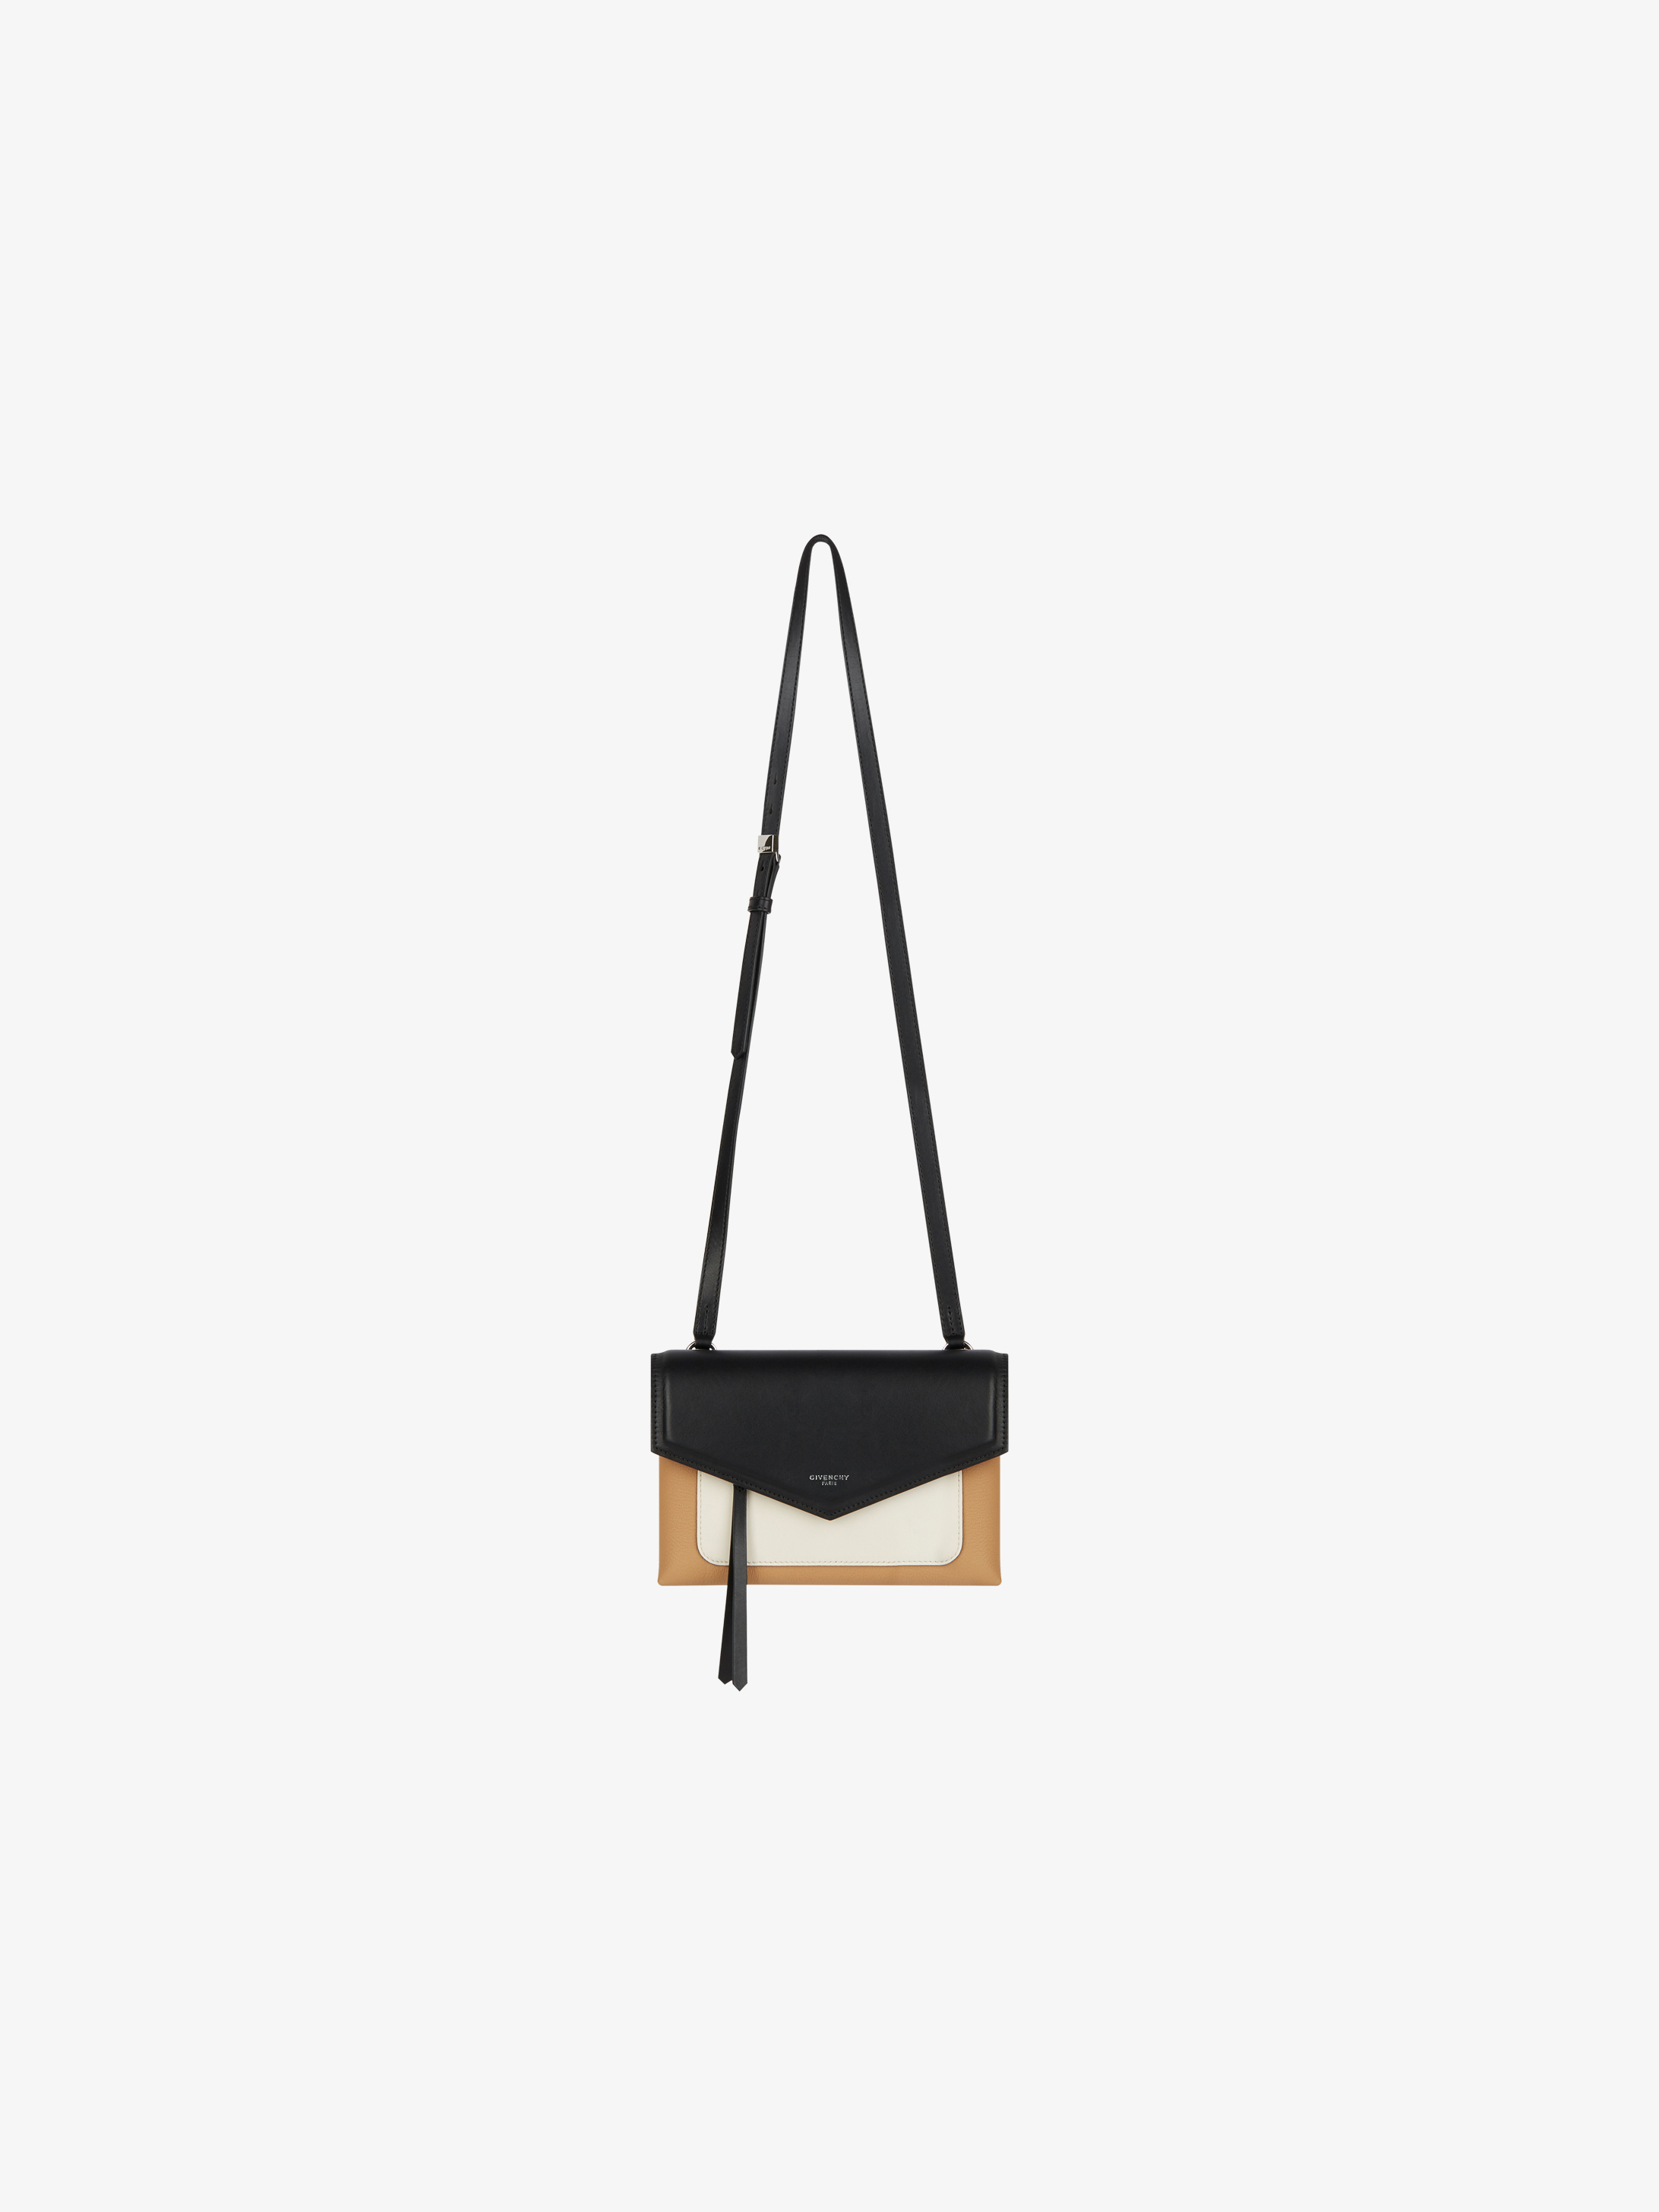 Tricolored Duetto leather bag